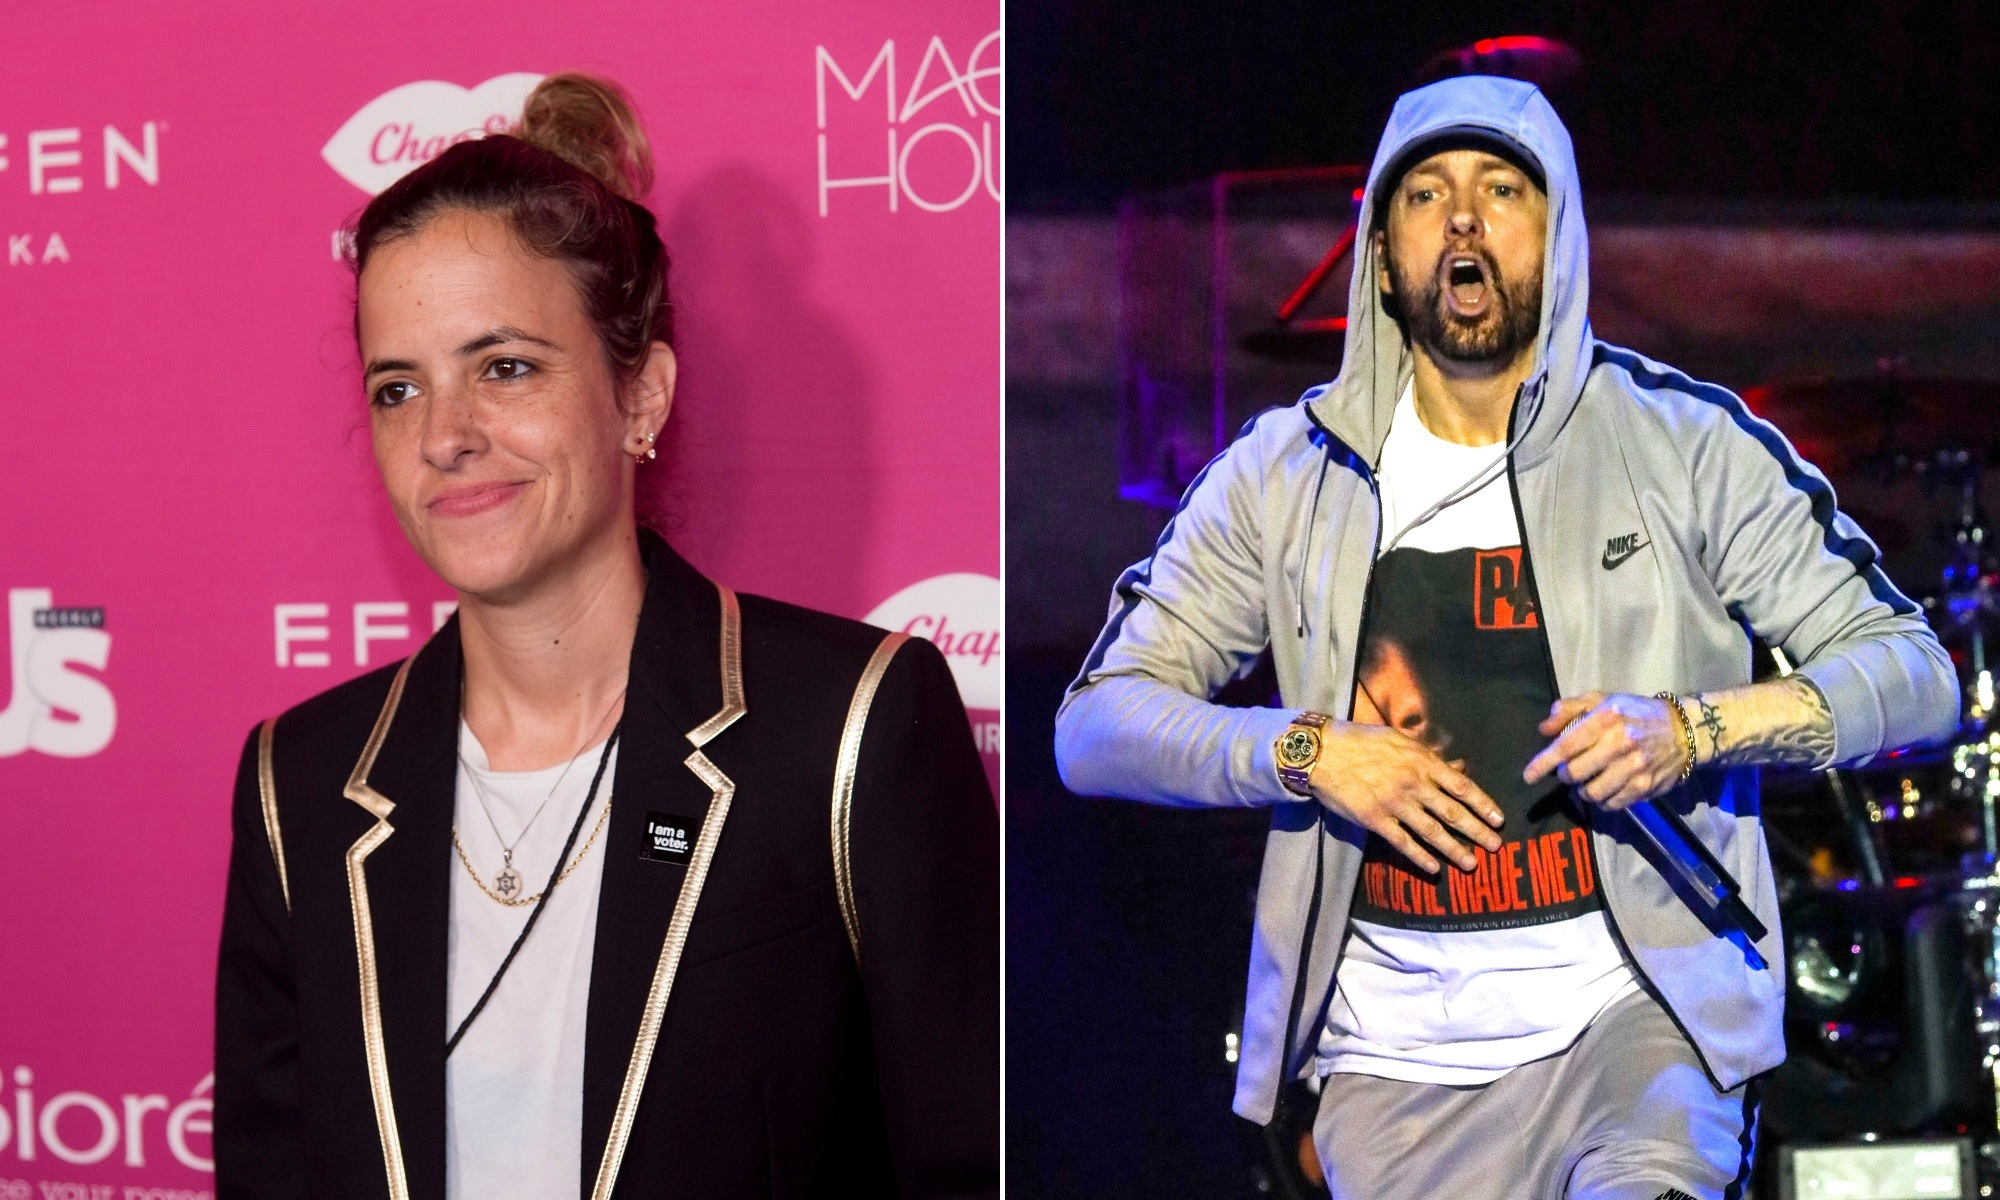 In this composite photo, DJ Samantha Ronson, left, attends Us Weekly's Most Stylish New Yorkers of 2018 party at Magic Hour Rooftop Bar and Lounge on in New York on Sept. 12, 2018 and Eminem, right, performs at the Bonnaroo Music and Arts Festival on day 3 in Manchester on June 9, 2018.